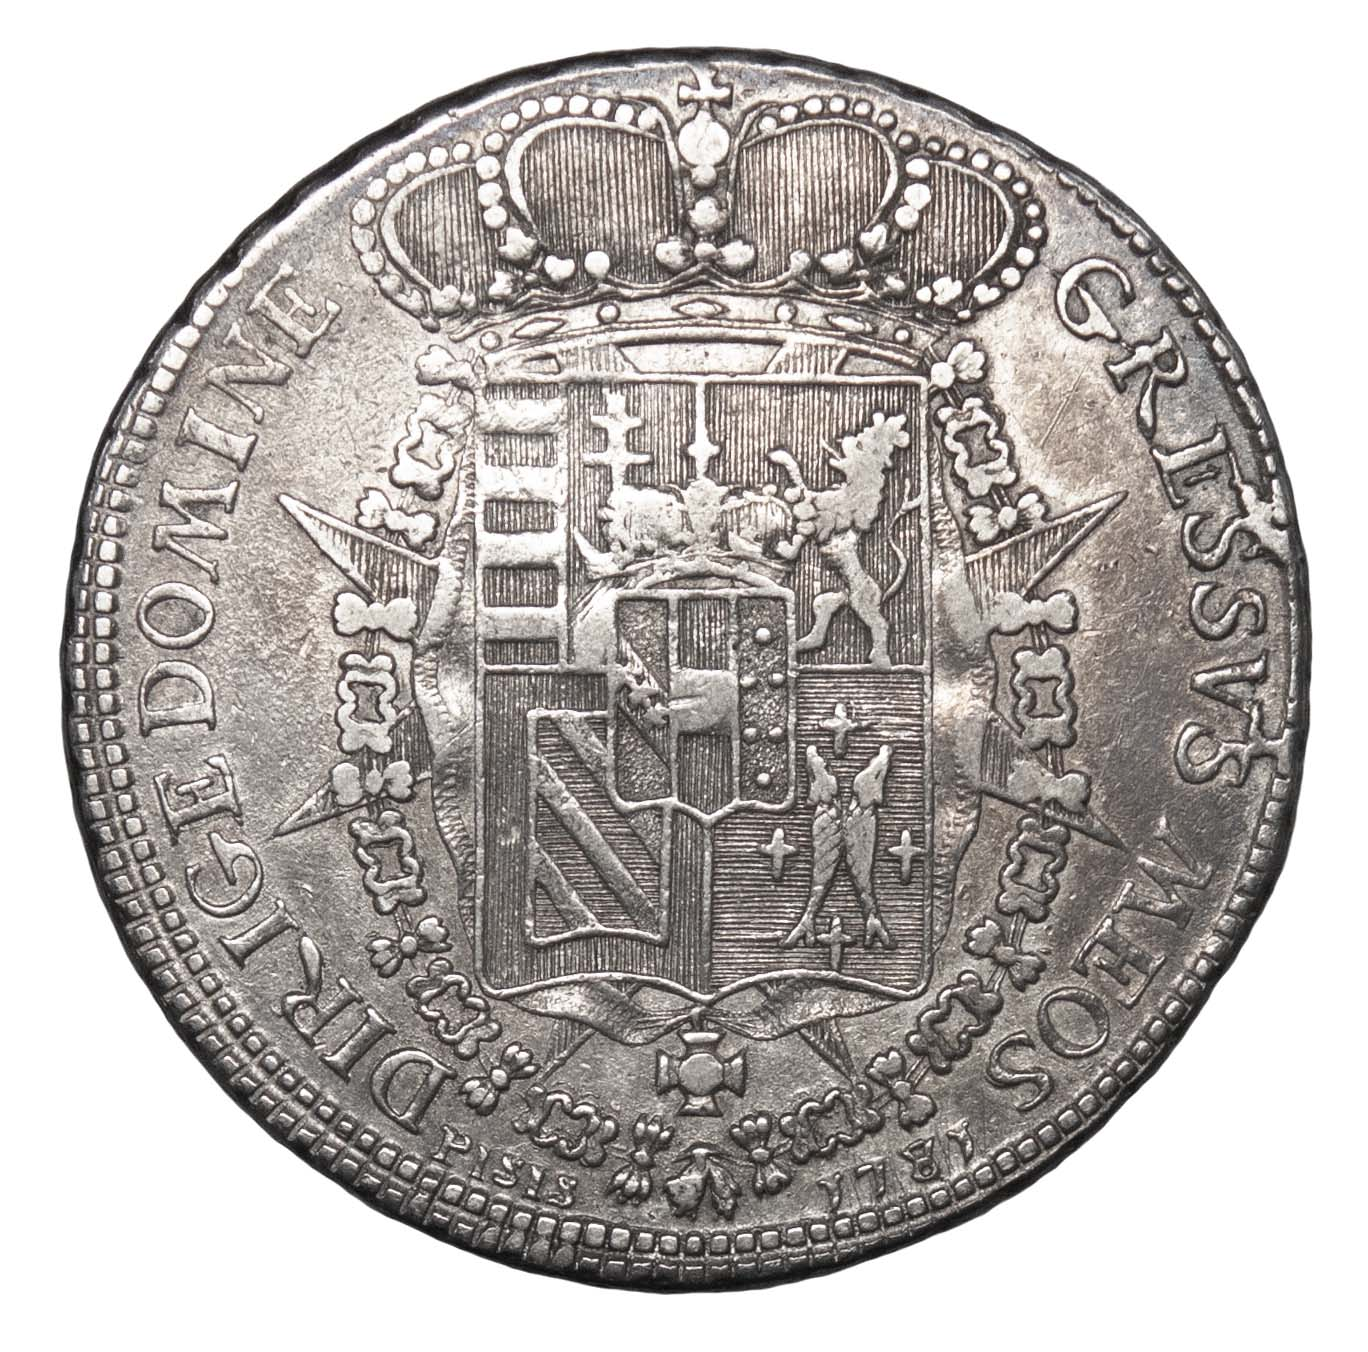 Italy, Tuscany, Peter Leopold (Leopold II), 1 Silver Francescone, 1781